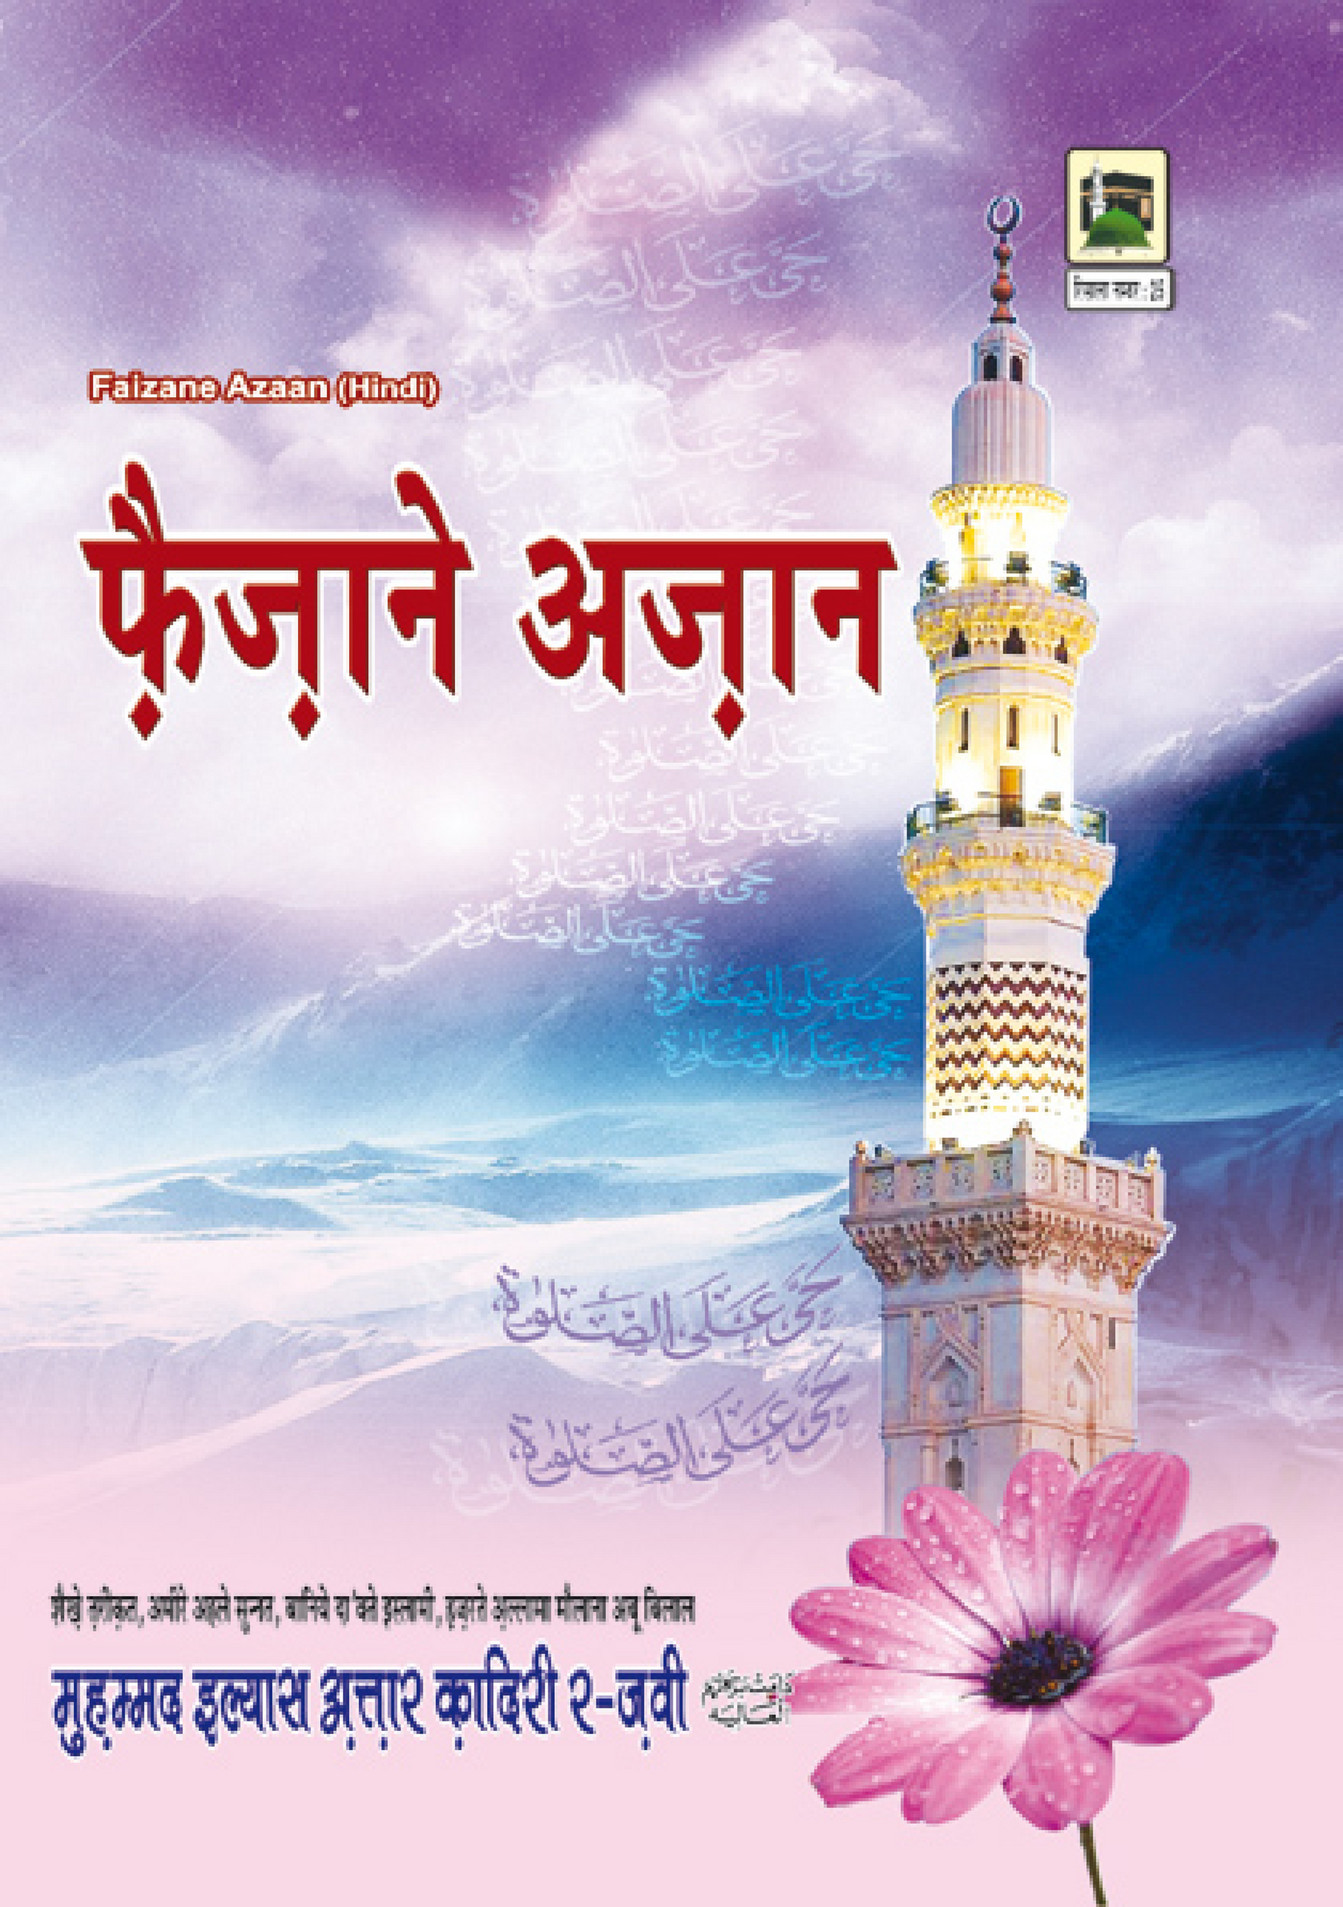 My publications - Faizan e Azan (In Hindi) - Page 20-21